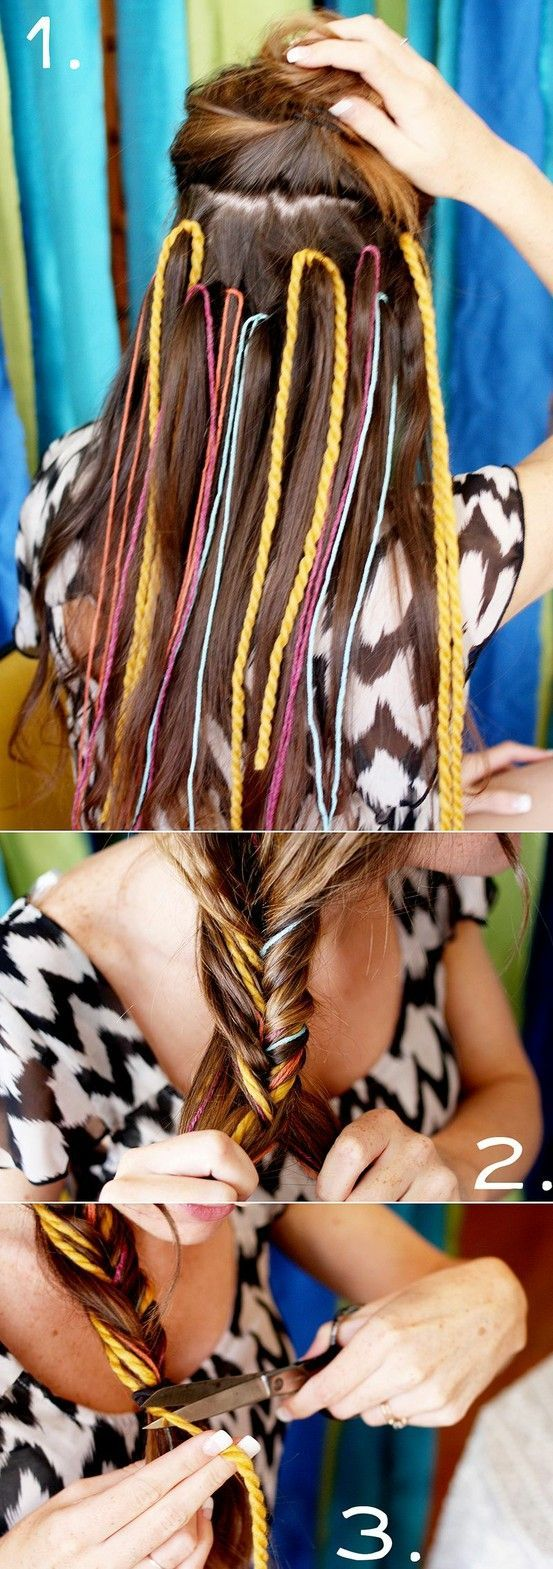 CordedBraid --- Lift up and securetop section of hair. Tye random cords and strings into hair as in picture. Release top hair. Braid all, any kind of braid, like the fishtail shown here. Tie off braid. Cut off too long cords. (Be careful not to cut the hair!)Cute and stylish idea via.